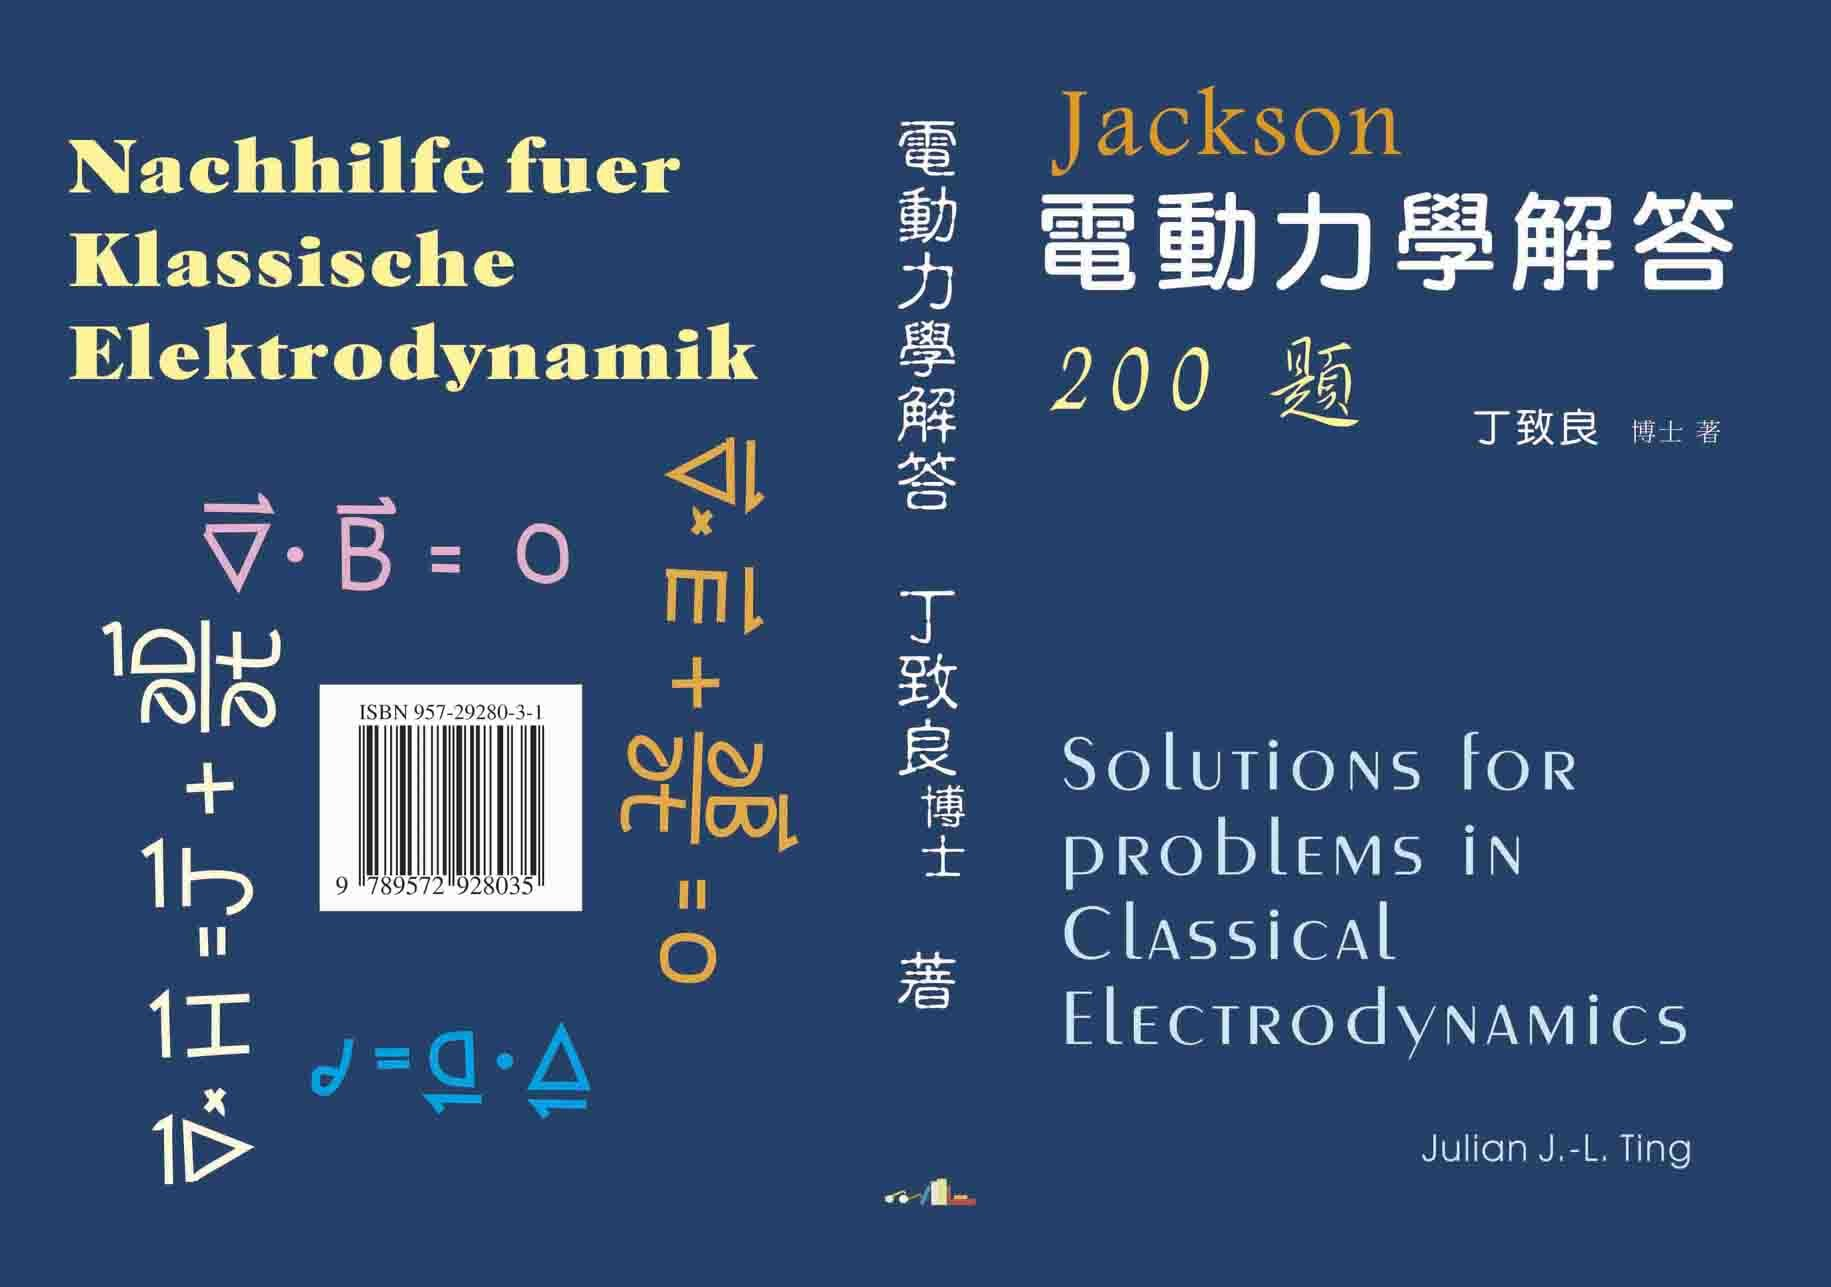 Solutions for problems in classical electrodynamics julian ting 71yrkgj7wwlg fandeluxe Image collections